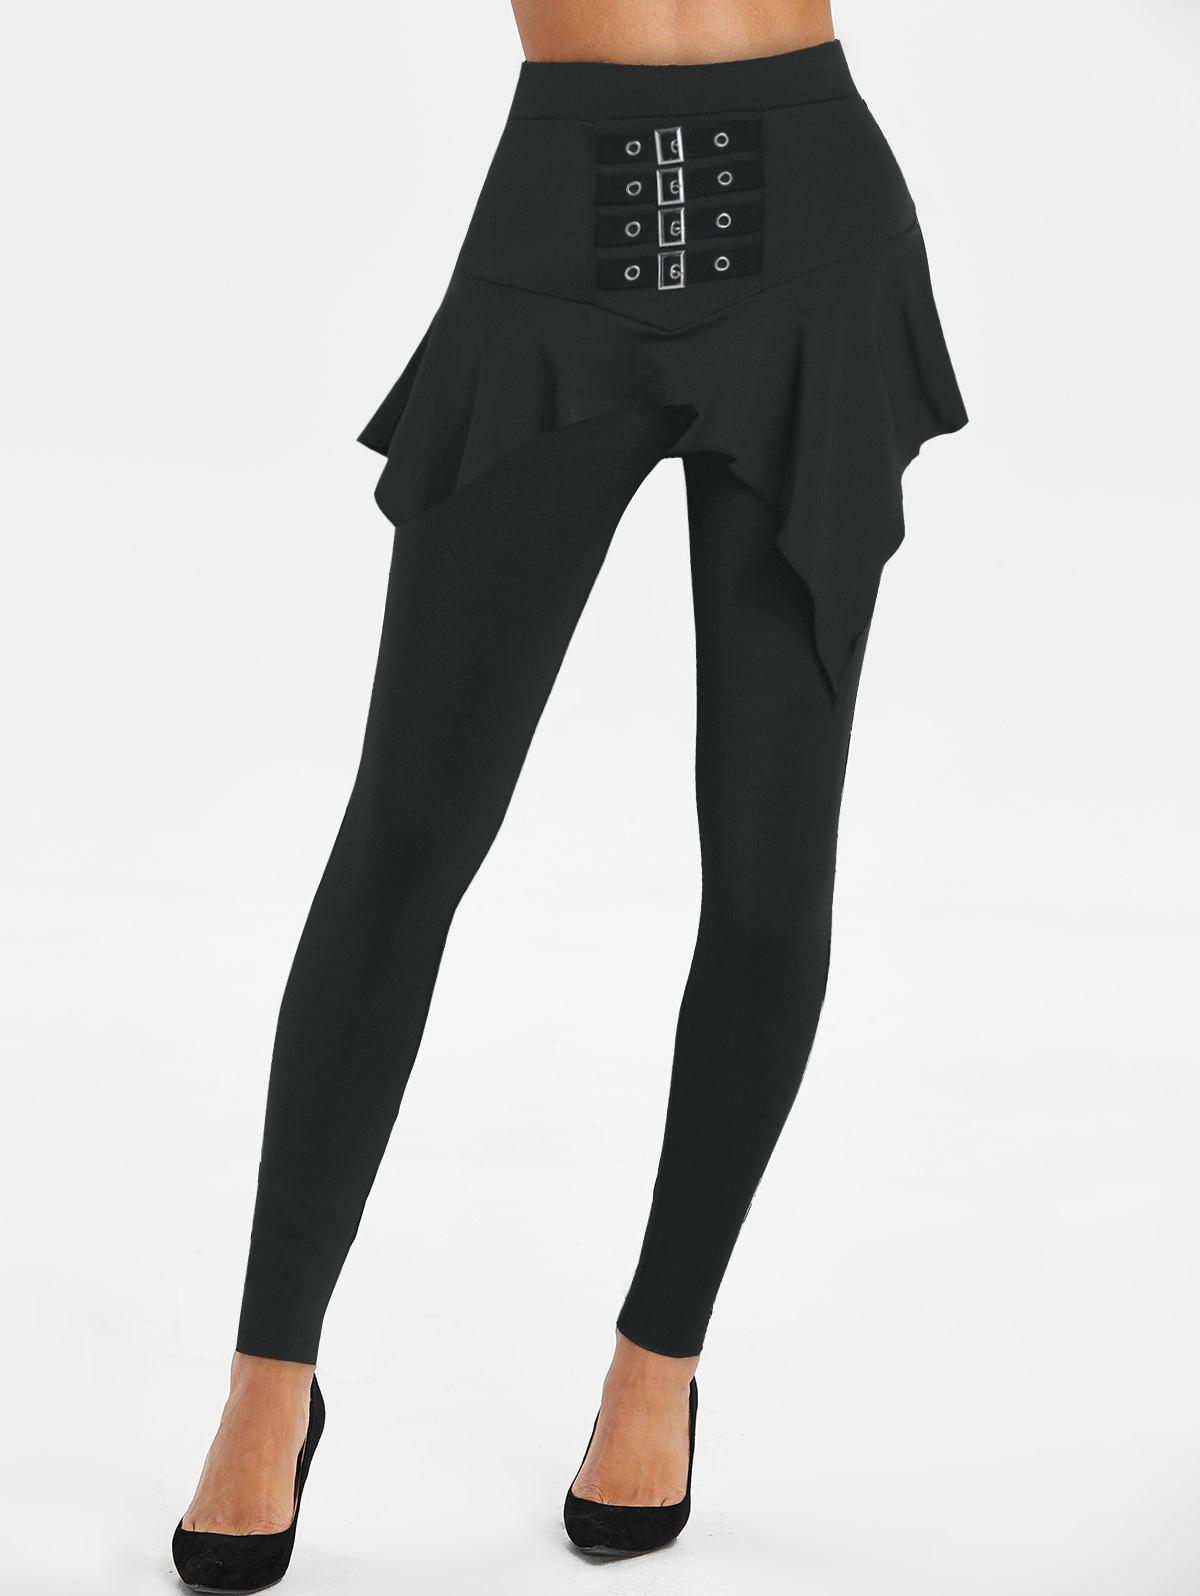 New High Rise Buckled Skirted Pants